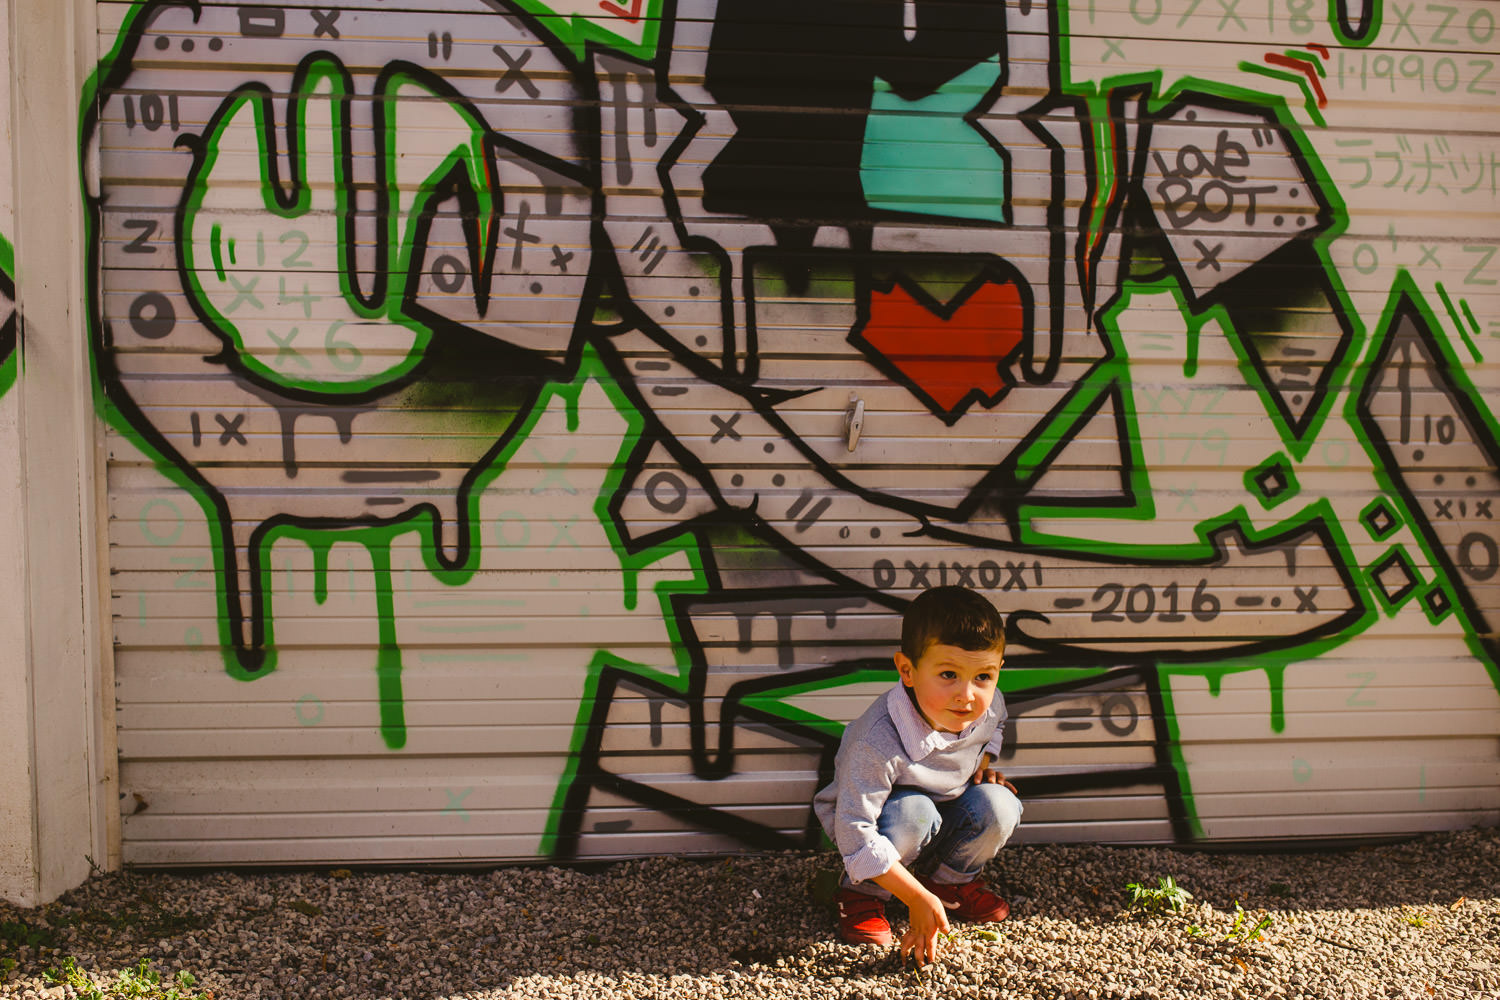 Little boy crouching in front of graffiti covered wall